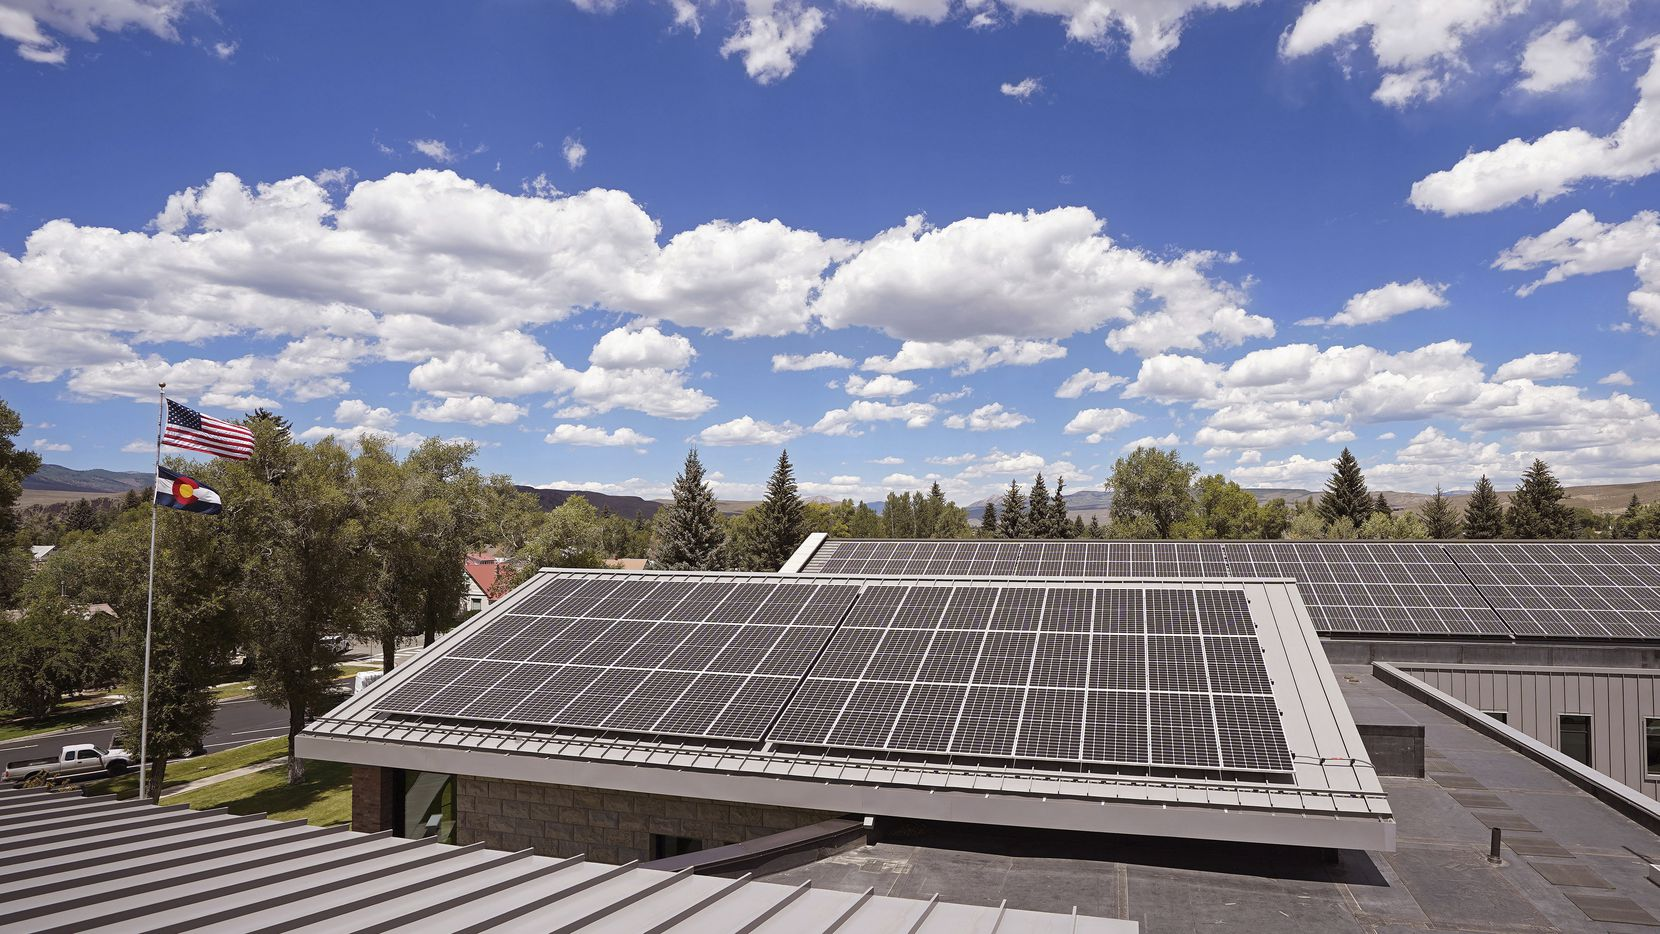 Johnson Controls installed solar panels on top of a county courthouse in Colorado in 2020.